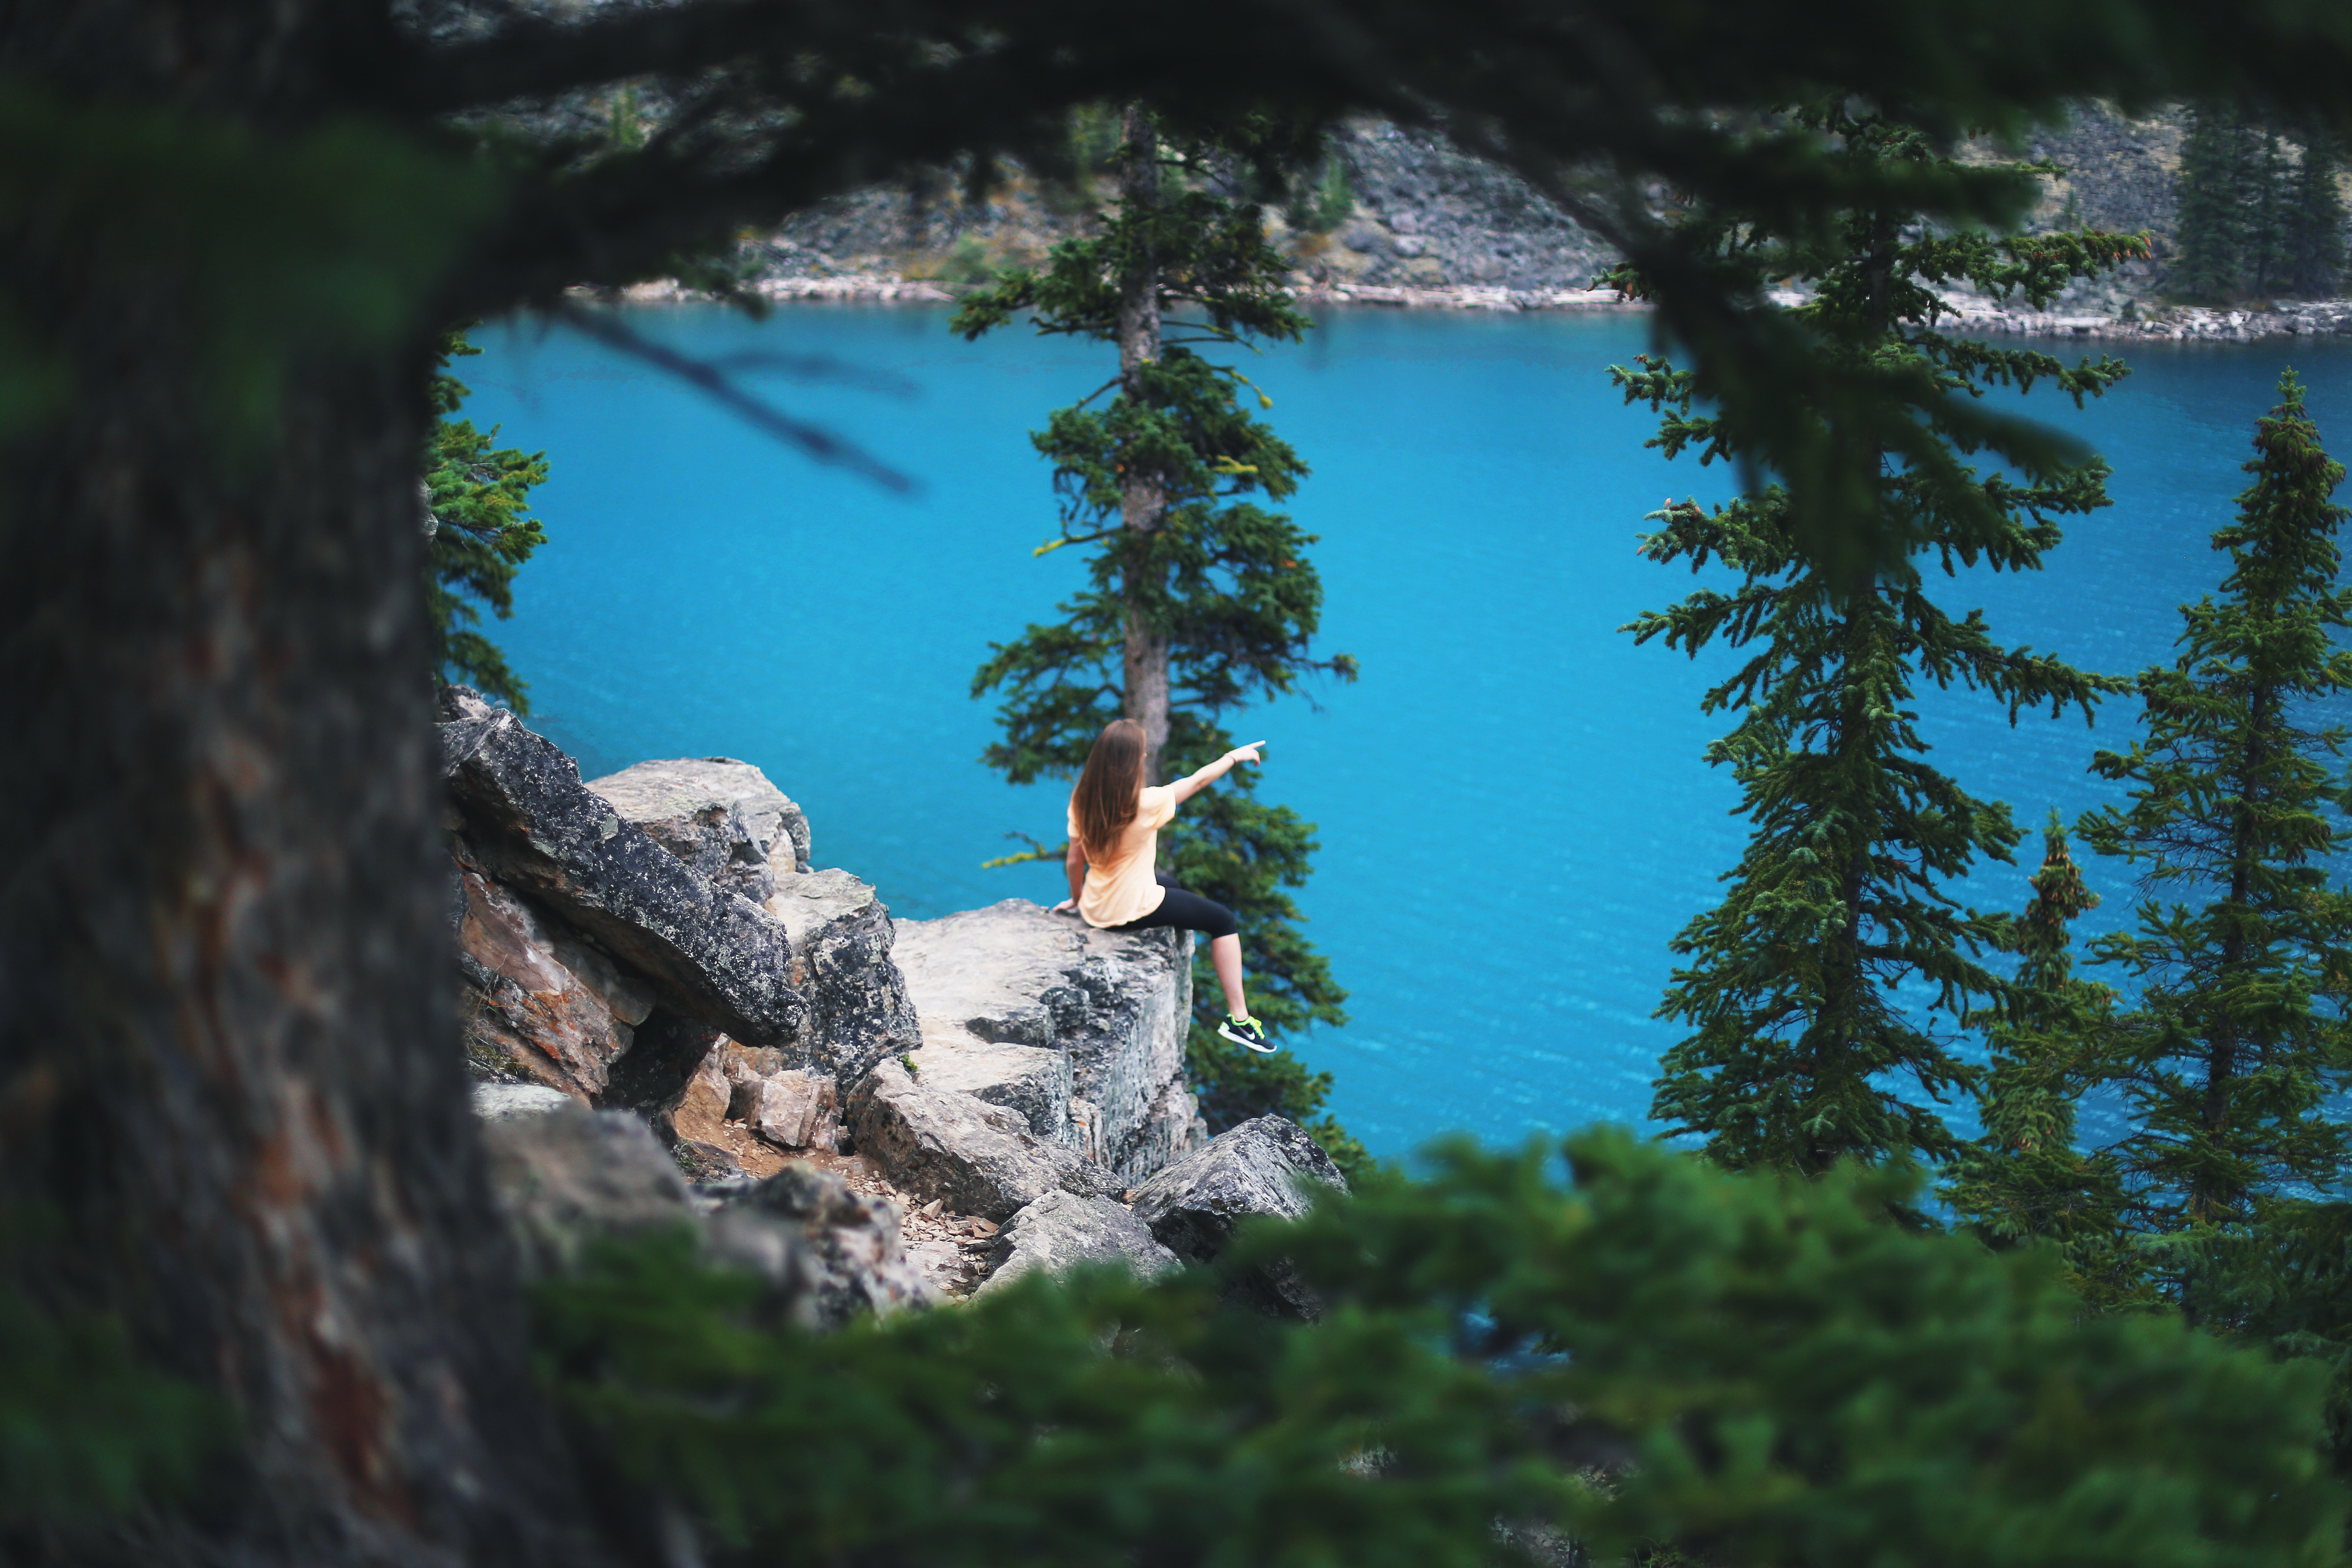 A young woman with an outstretched arm seated on rocks overlooking the azure Moraine Lake